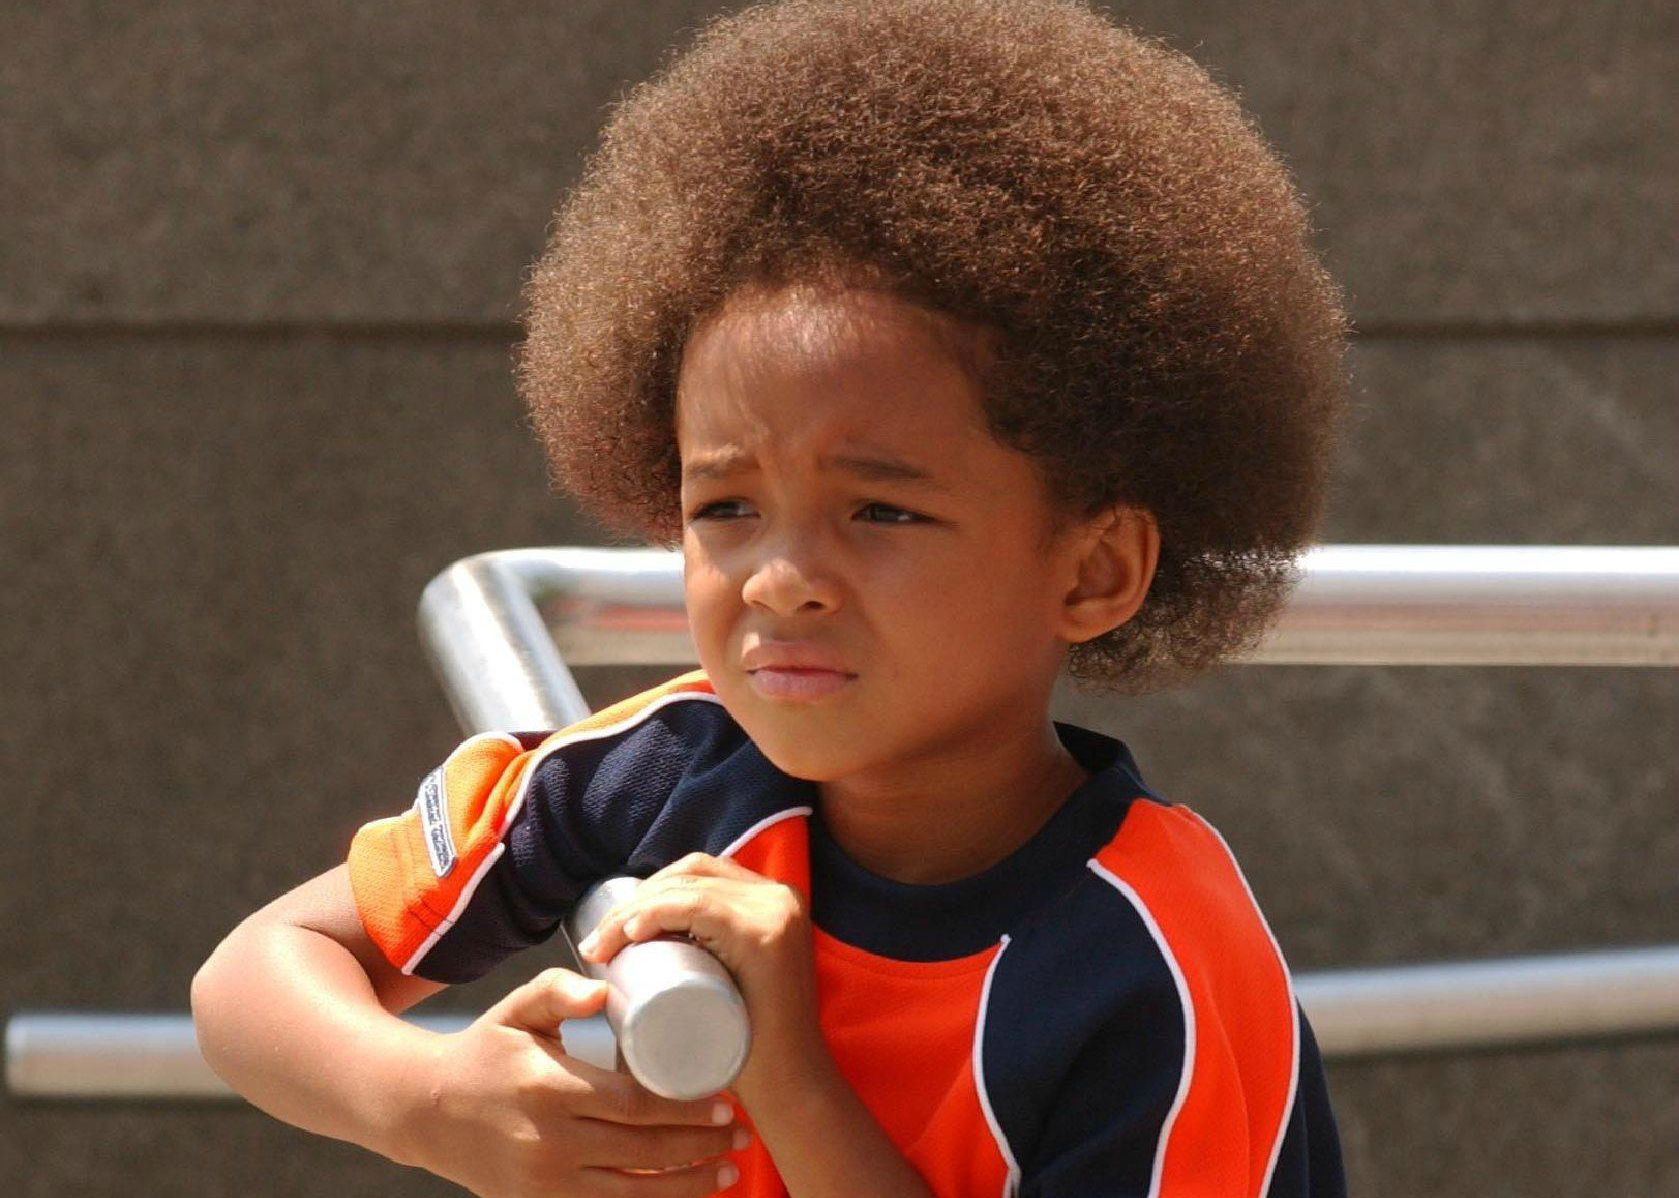 Jaden Smith childhood photo  at Sheknows.com